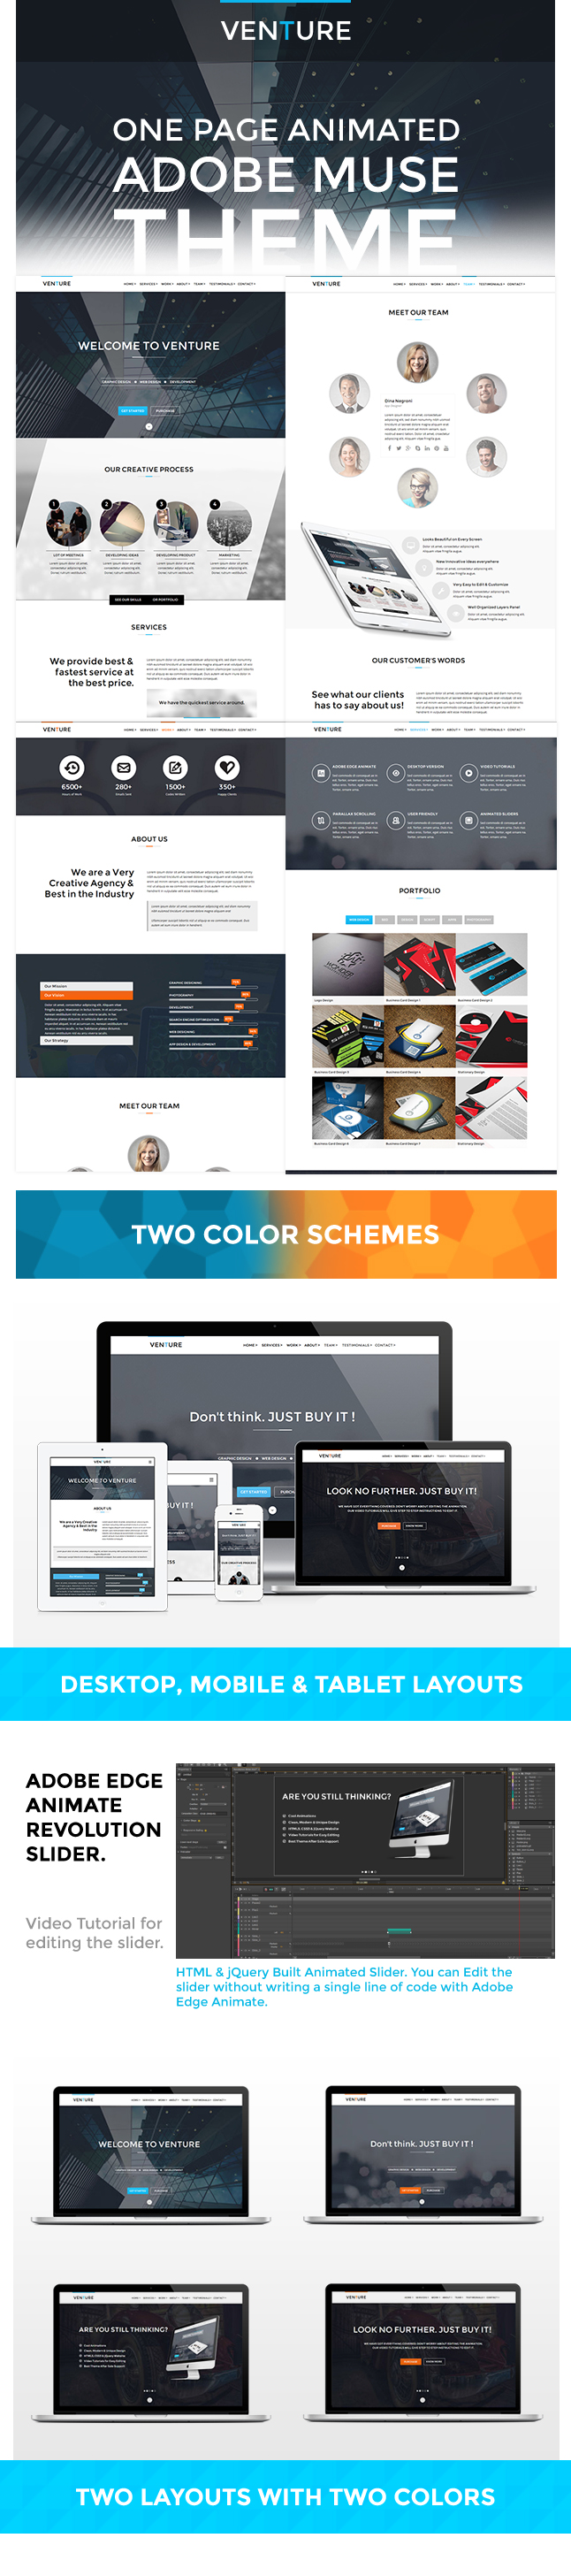 Venture: One Page Animated Muse Template